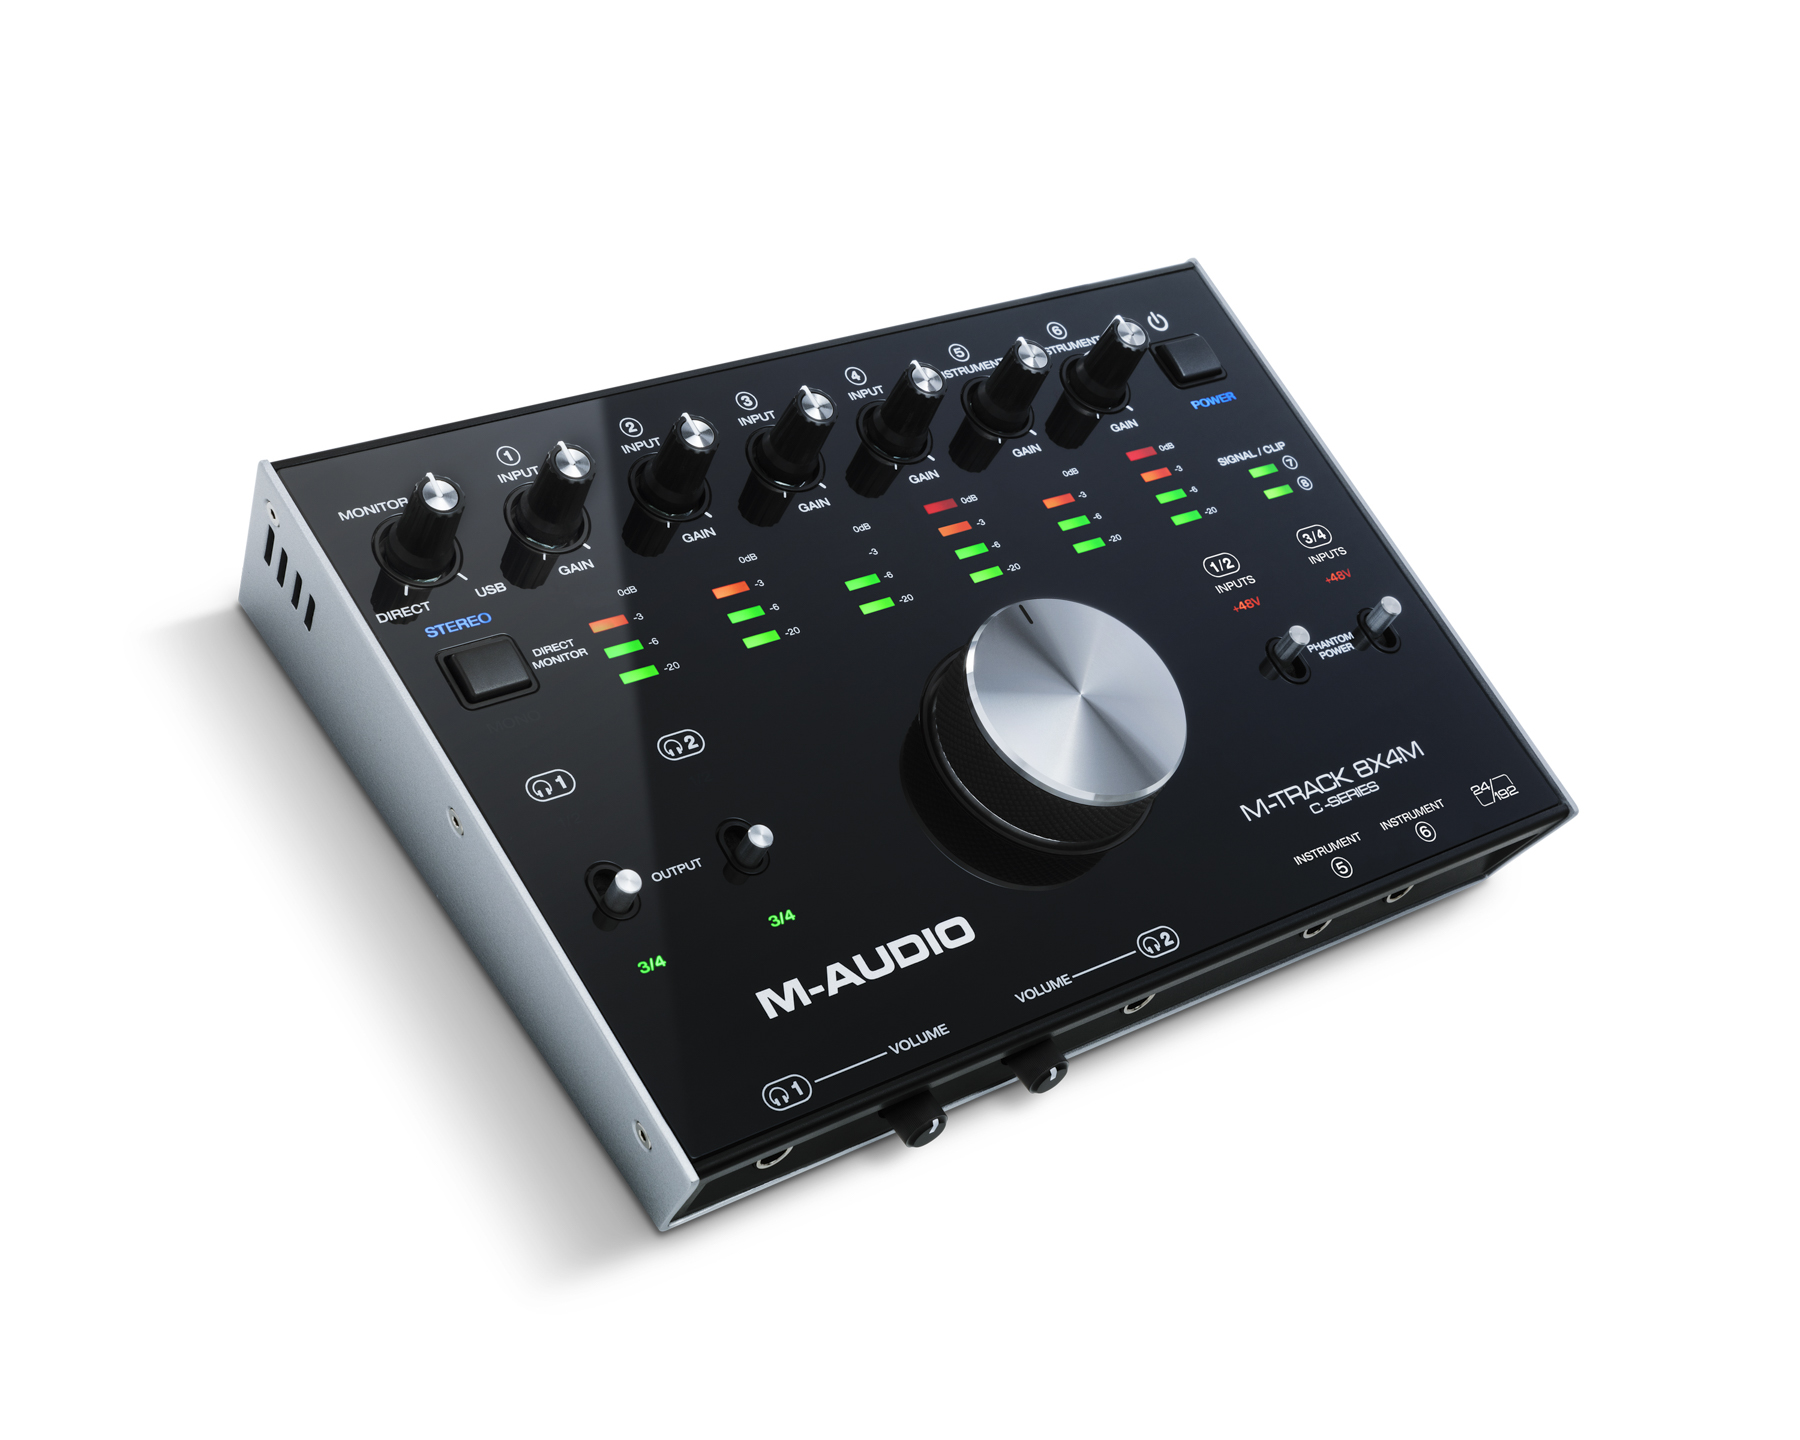 News: M-Audio mit USB-Audiointerface M-Track 8x4M